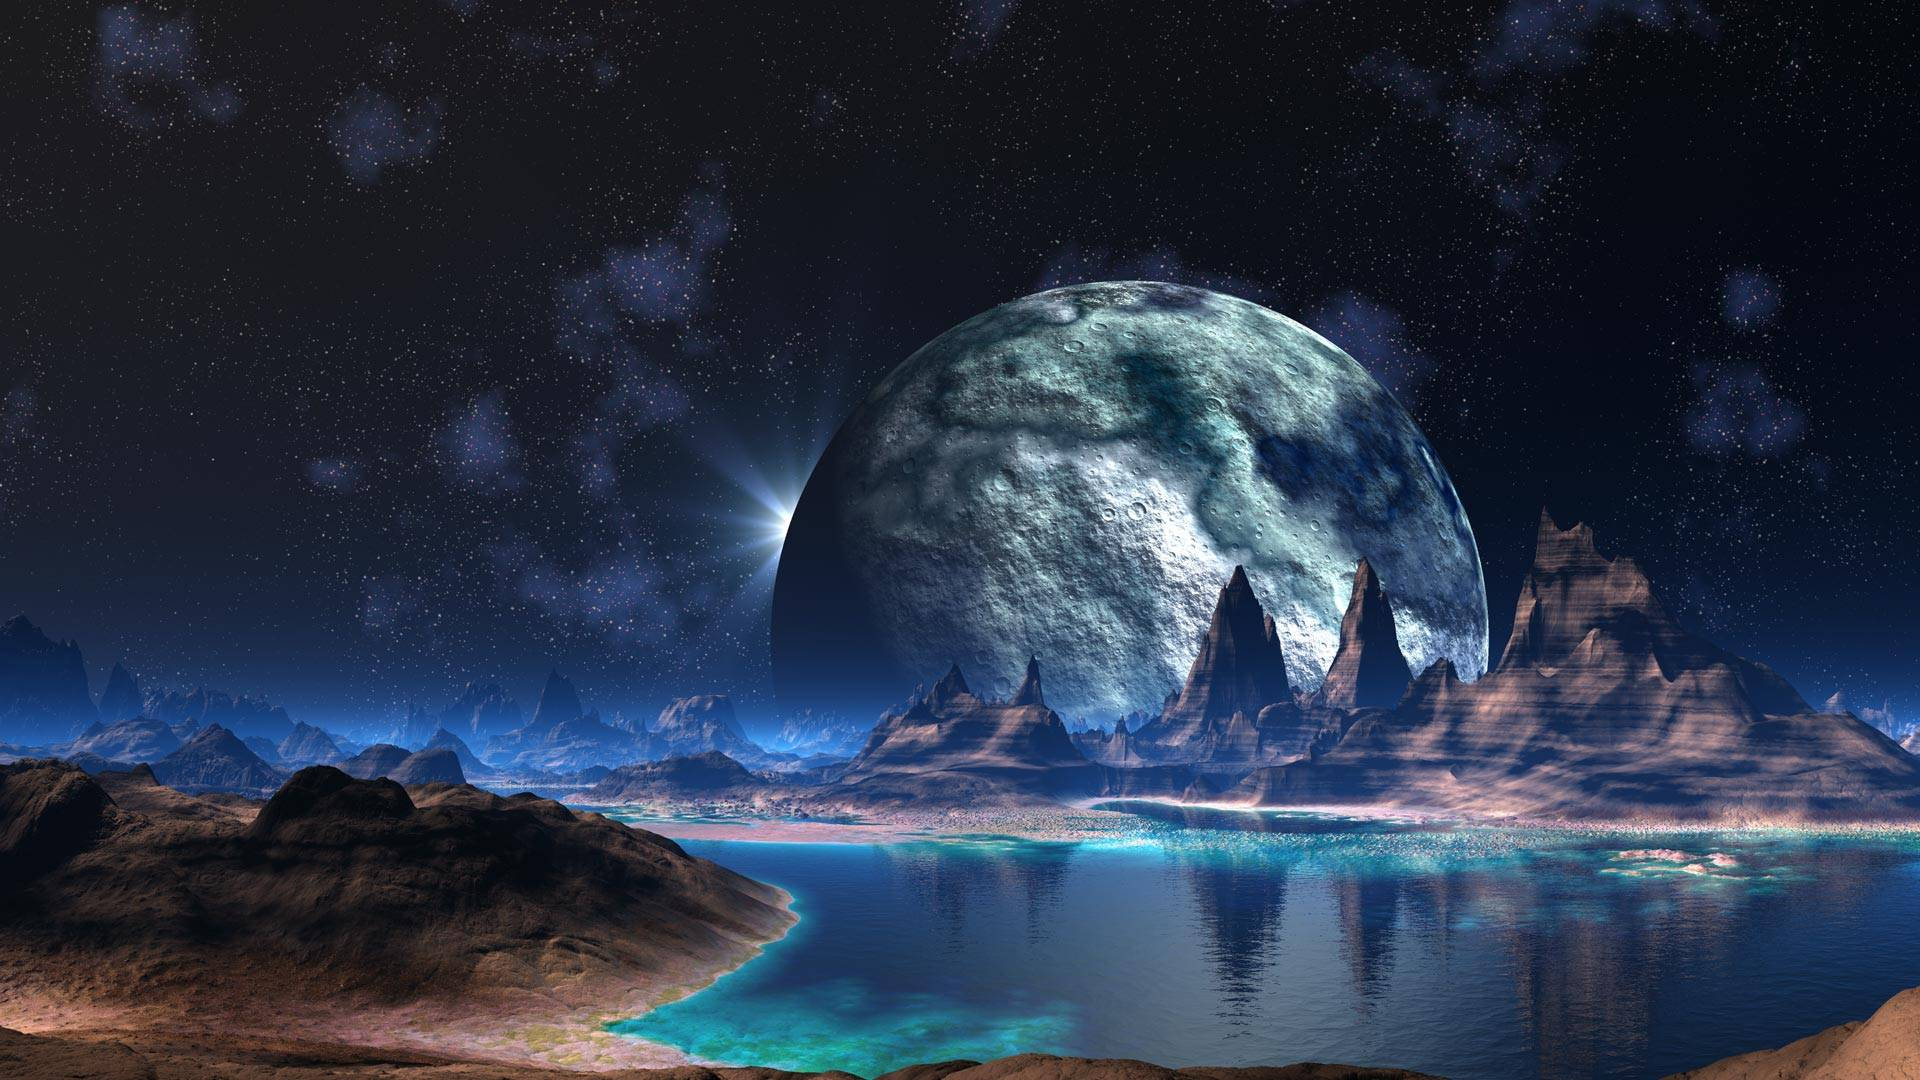 Stars Lake sci fi space reflection mountains wallpaper background 1920x1080